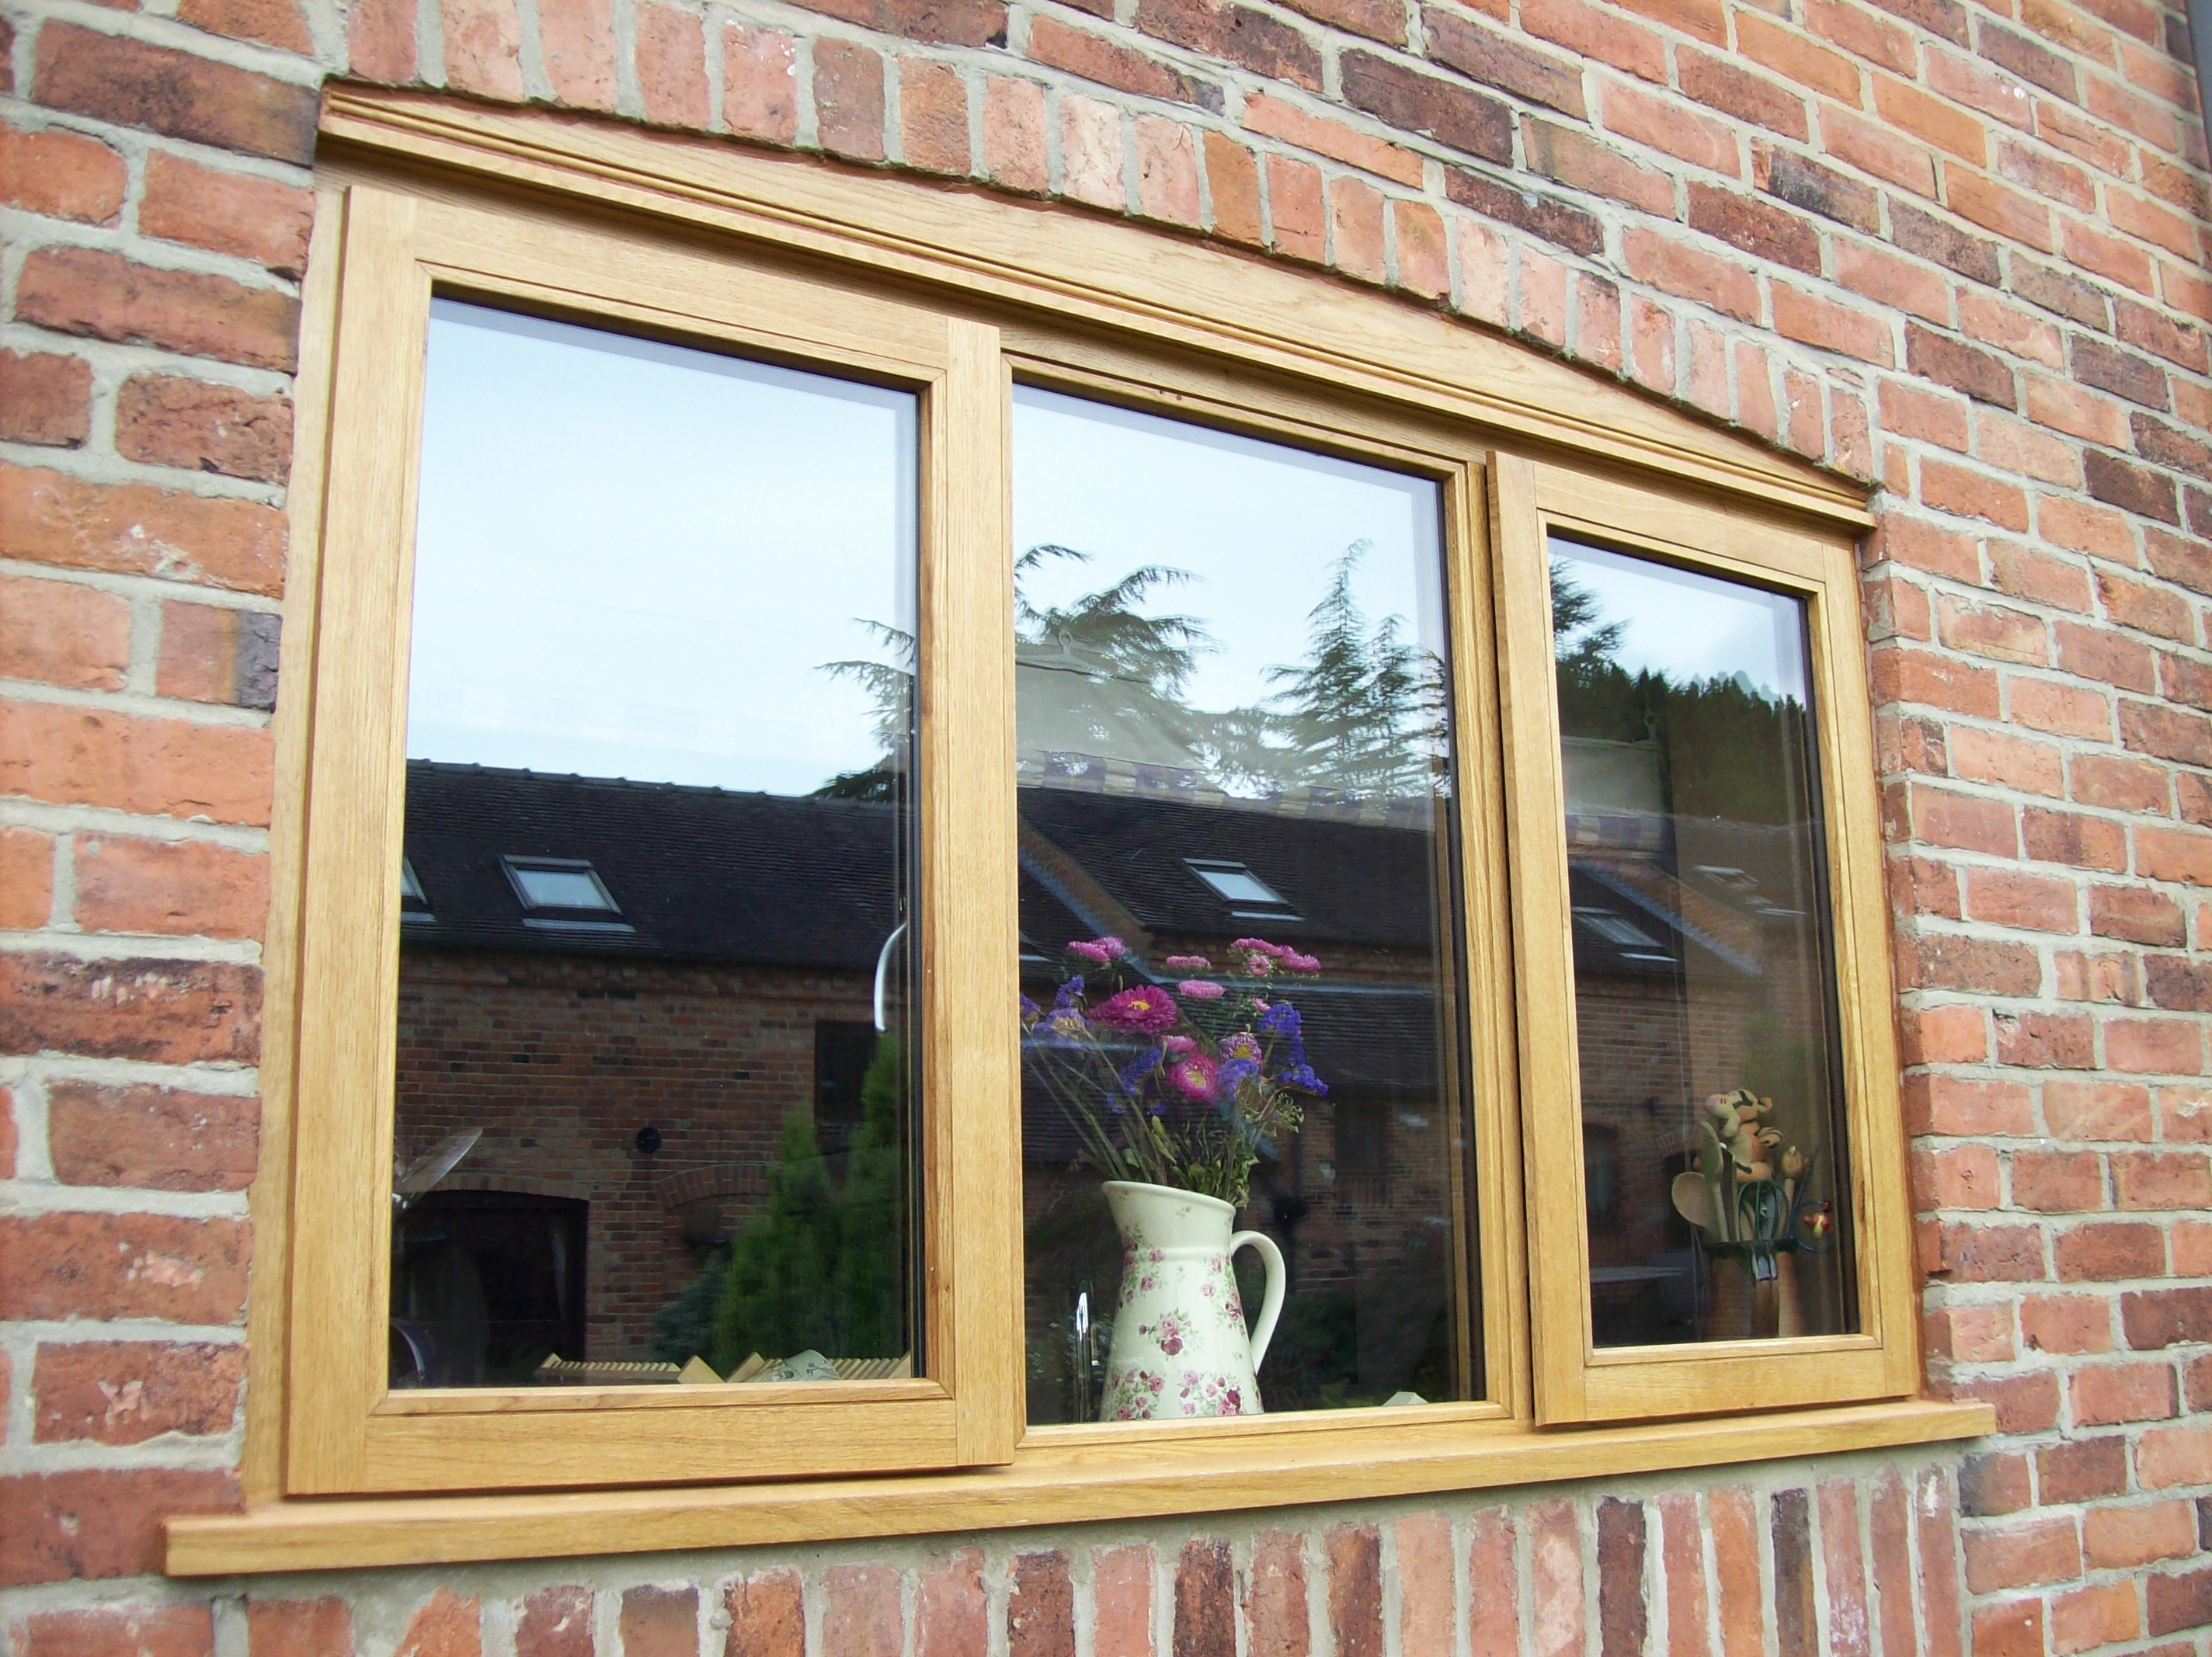 Oak Doors With Windows : Oak window bull construction